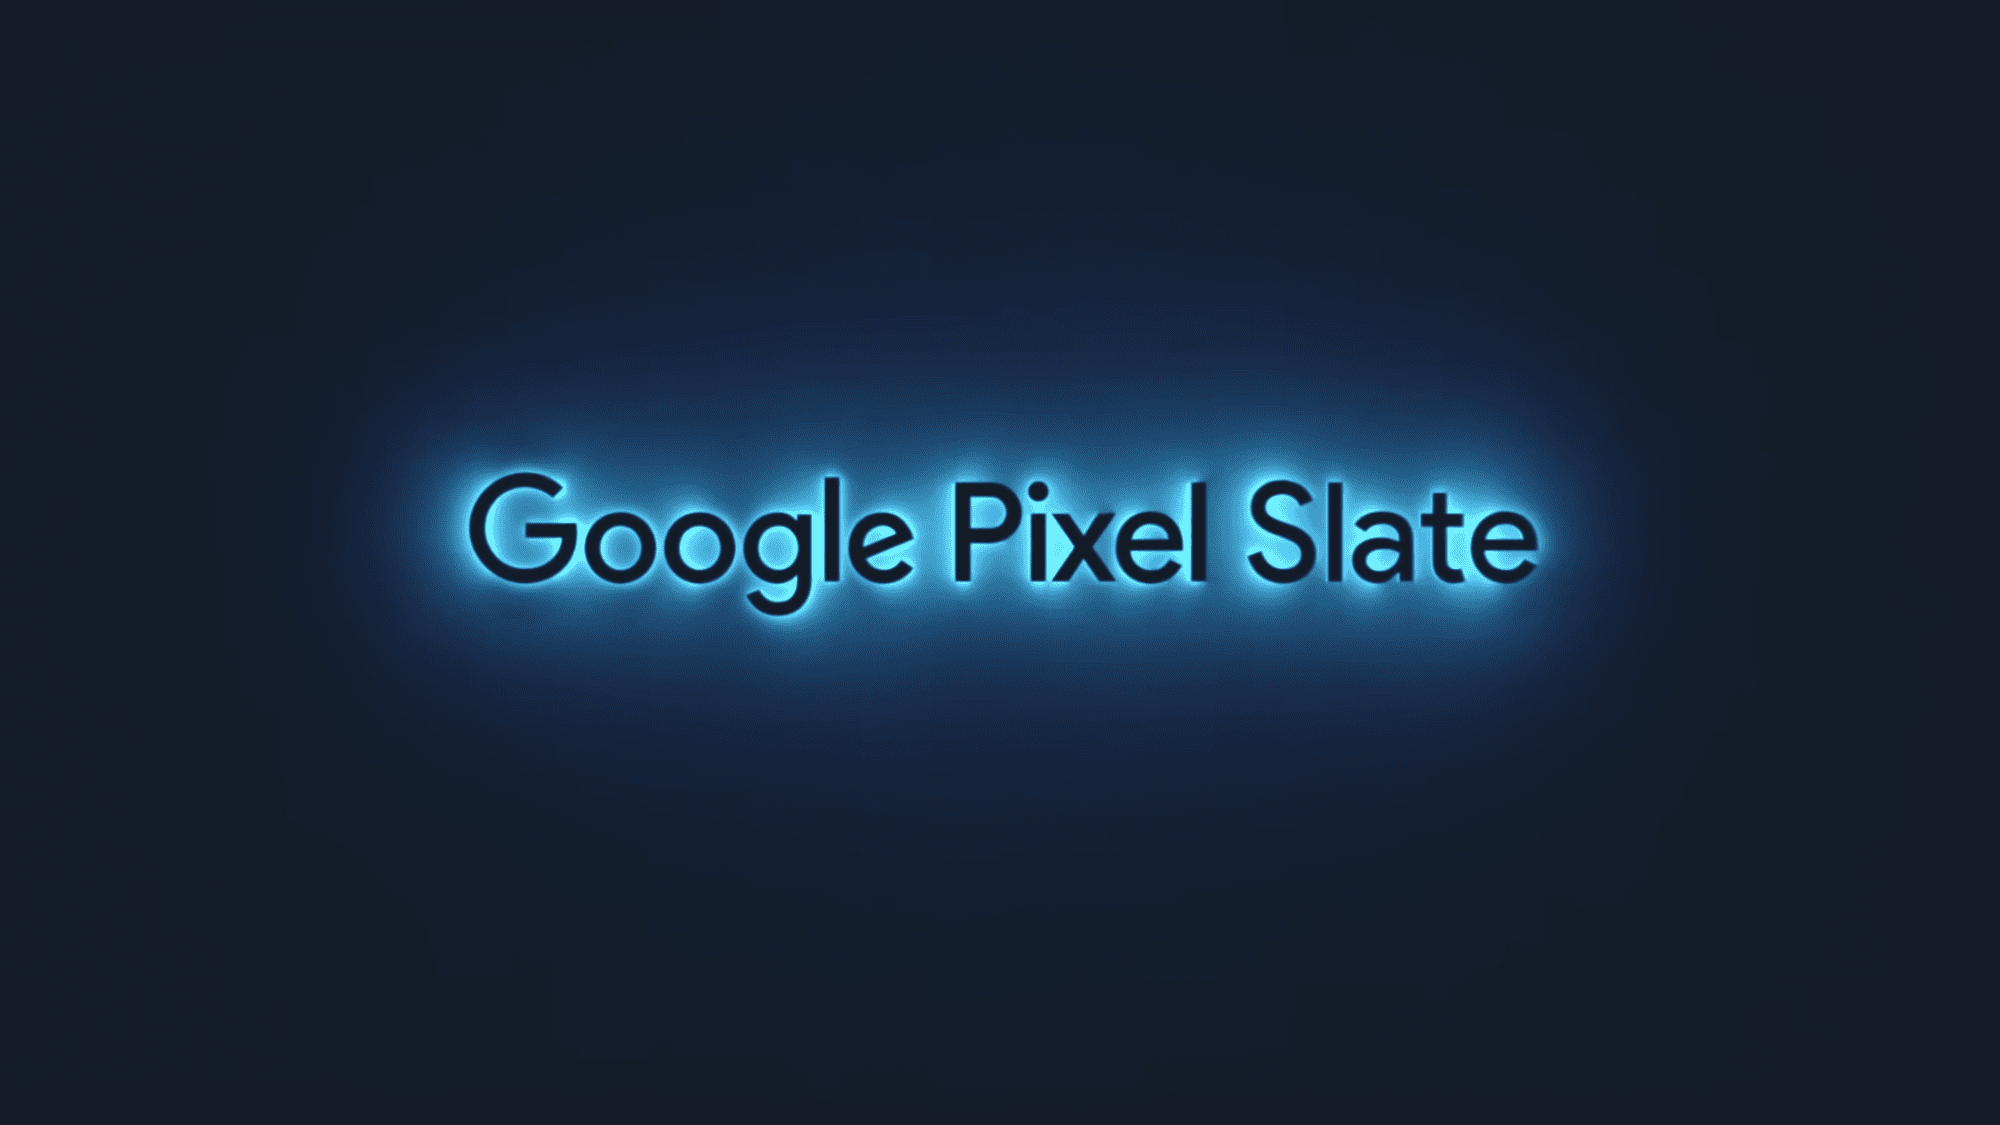 Google Pixel Slate Release Date, Pre-order Option Available